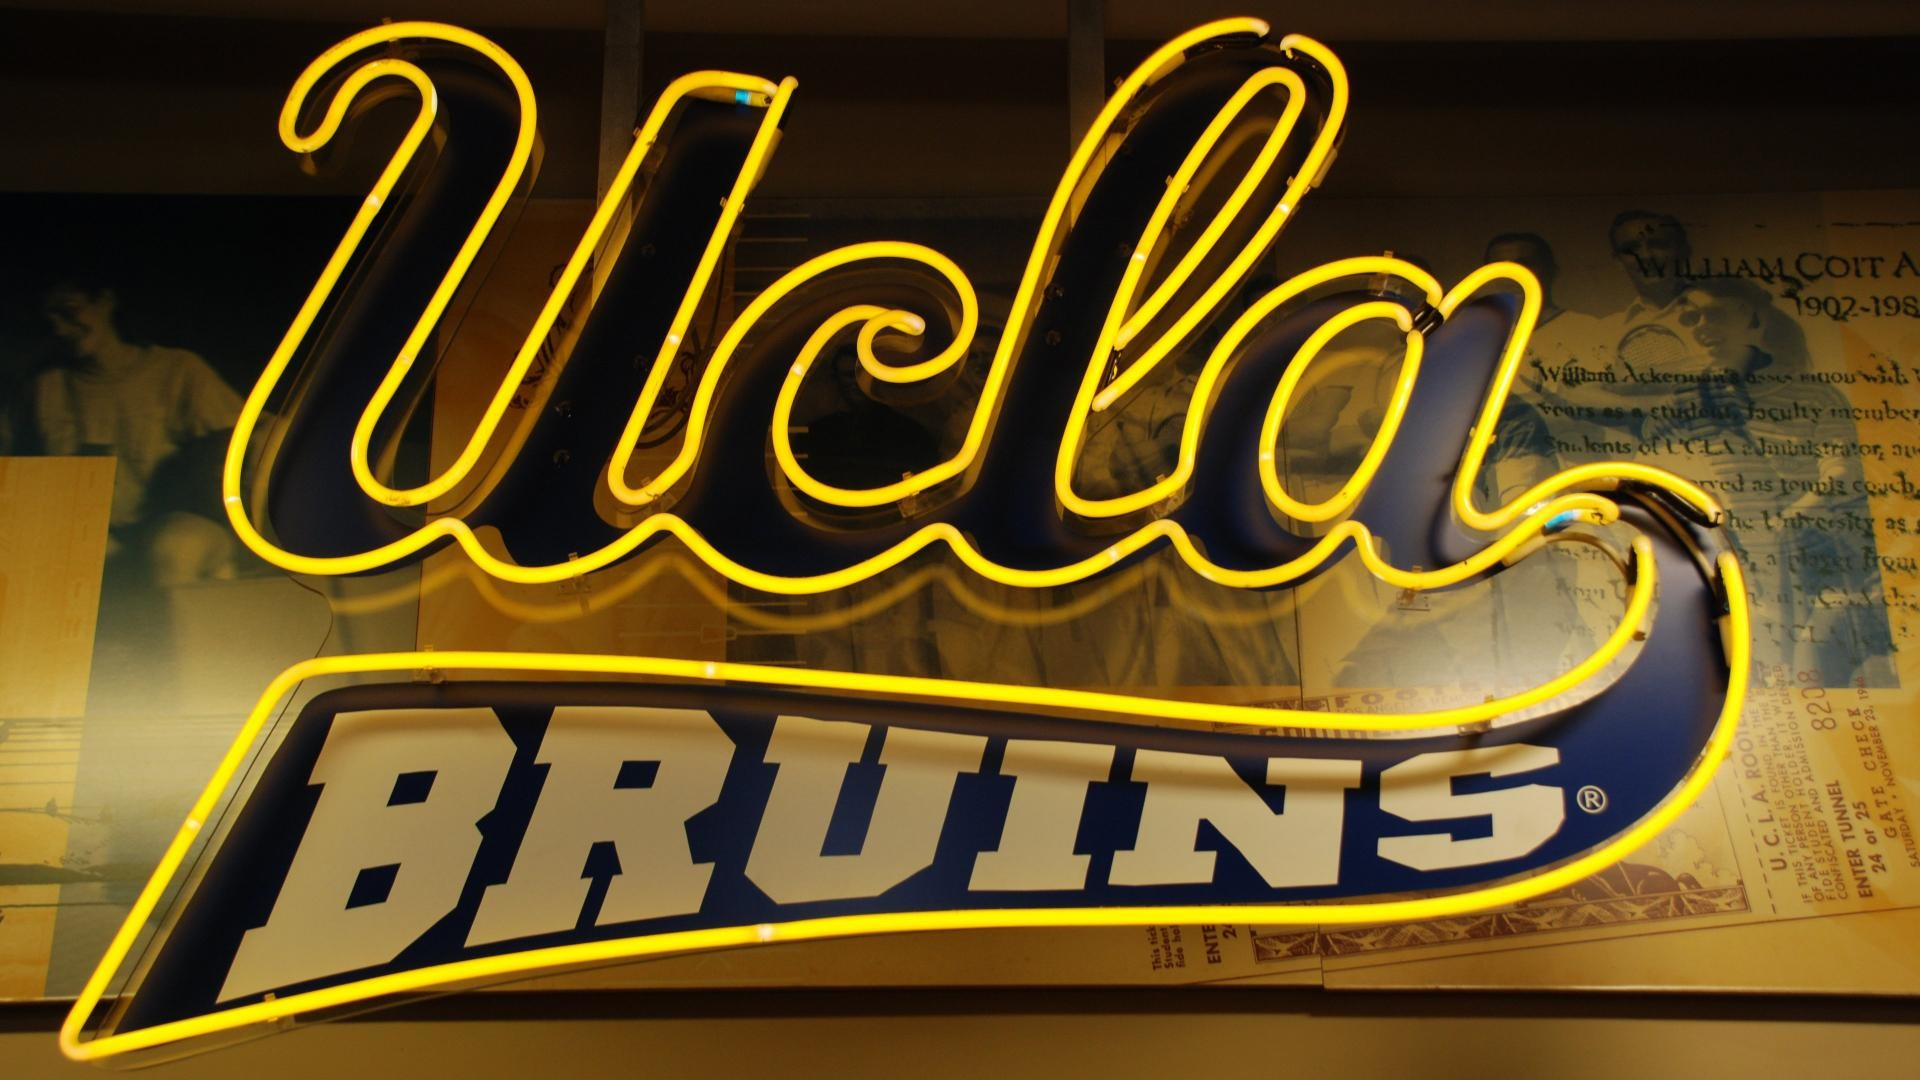 1920x1080 Logo of UCLA Wallpaper in 4K | HD Wallpapers for Free